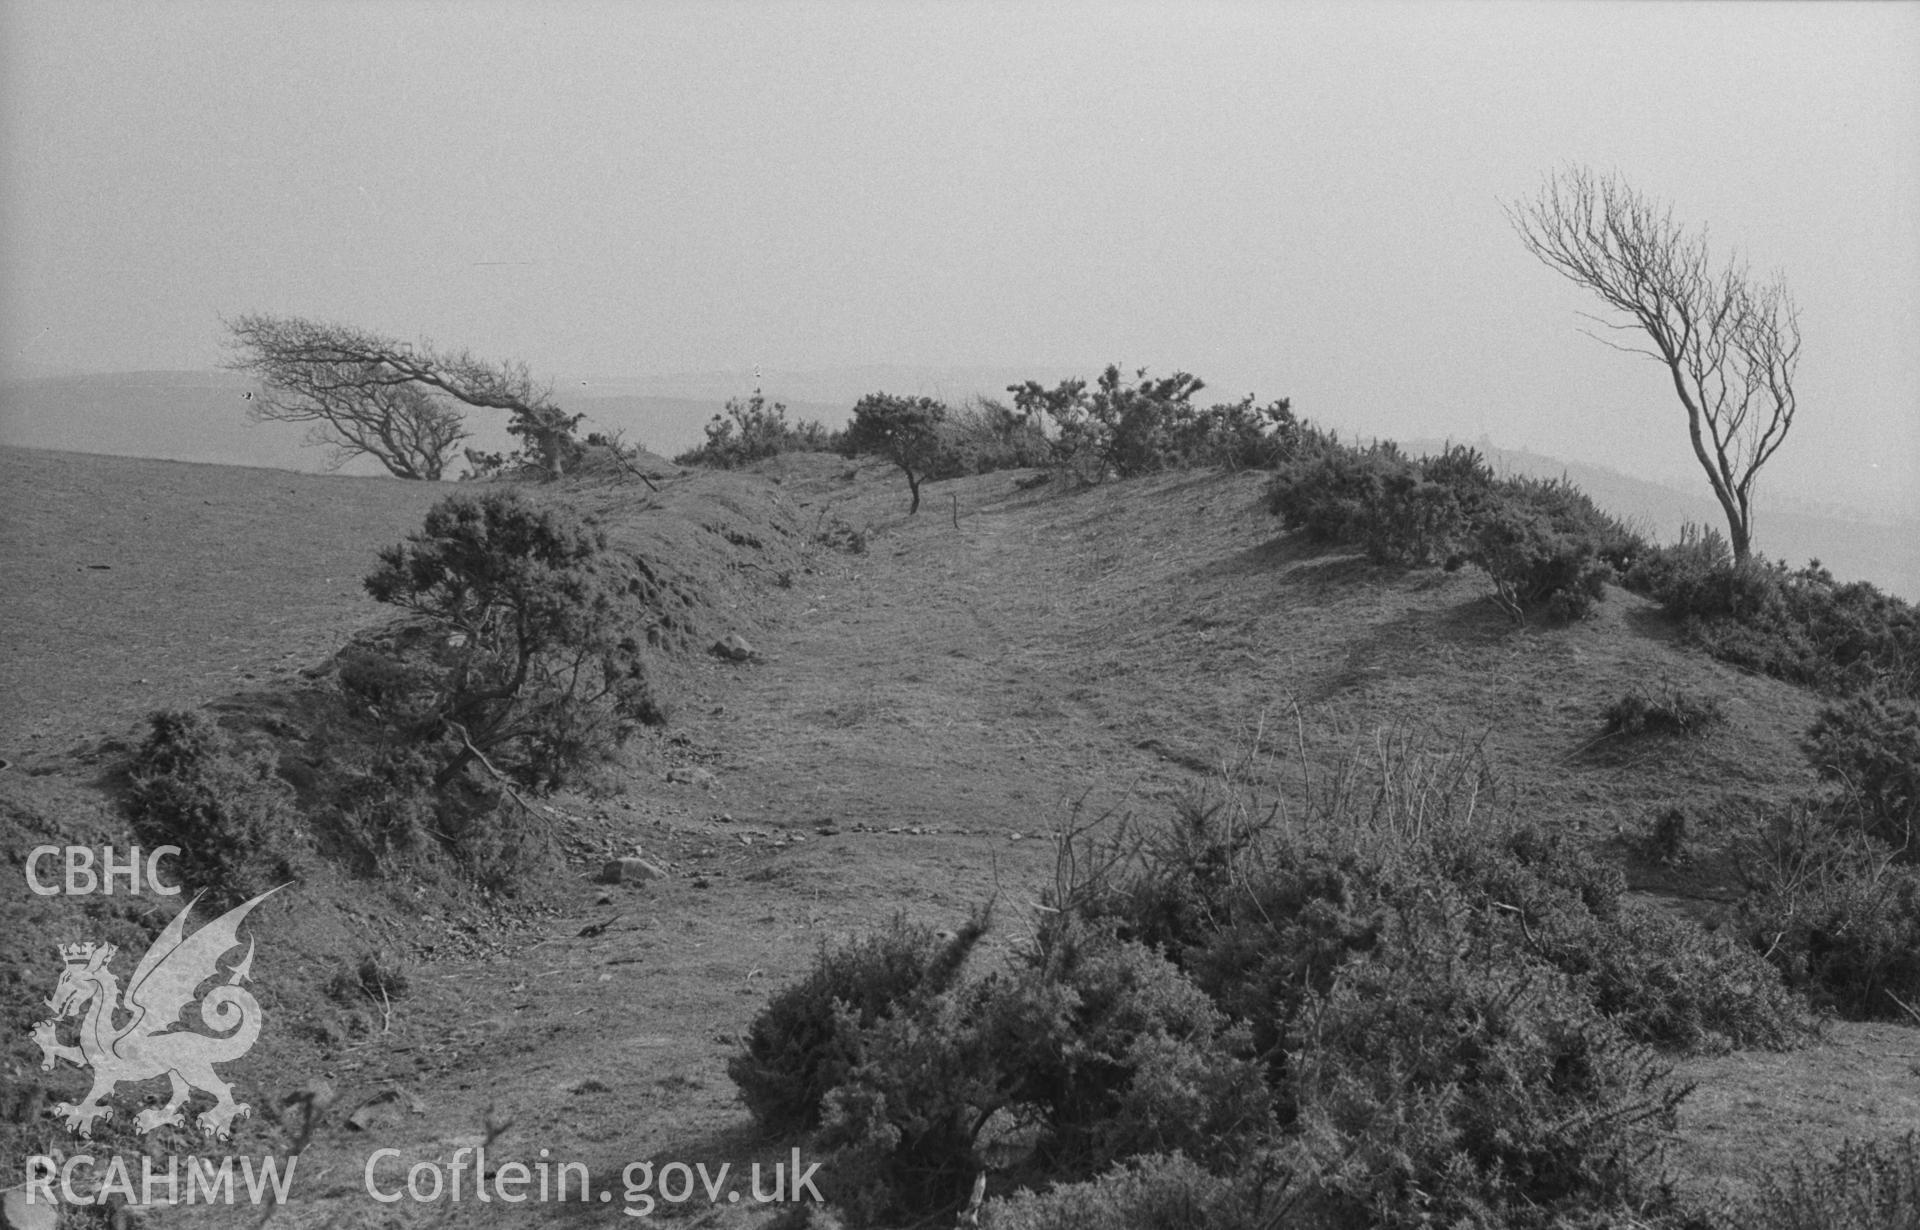 Digital copy of a black and white negative showing ramparts (and apparent entrance) at west side of Hen Gaer, Tirymynach, opposite the tumulus. Photographed in April 1963 by Arthur O. Chater from Grid Reference SN 6325 8445, looking south.